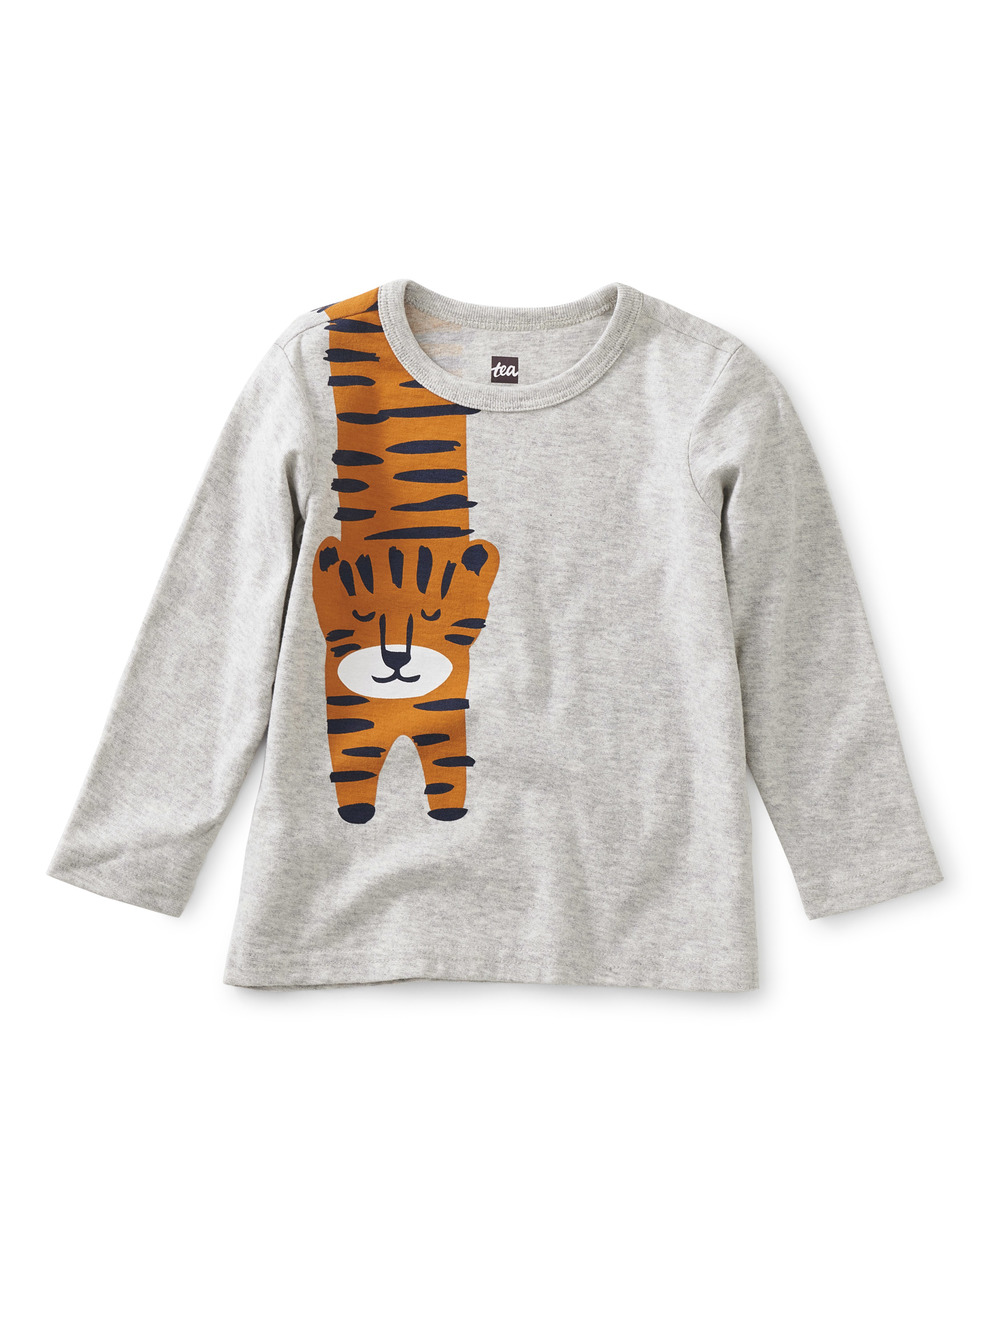 Tiger Baby Graphic Tee